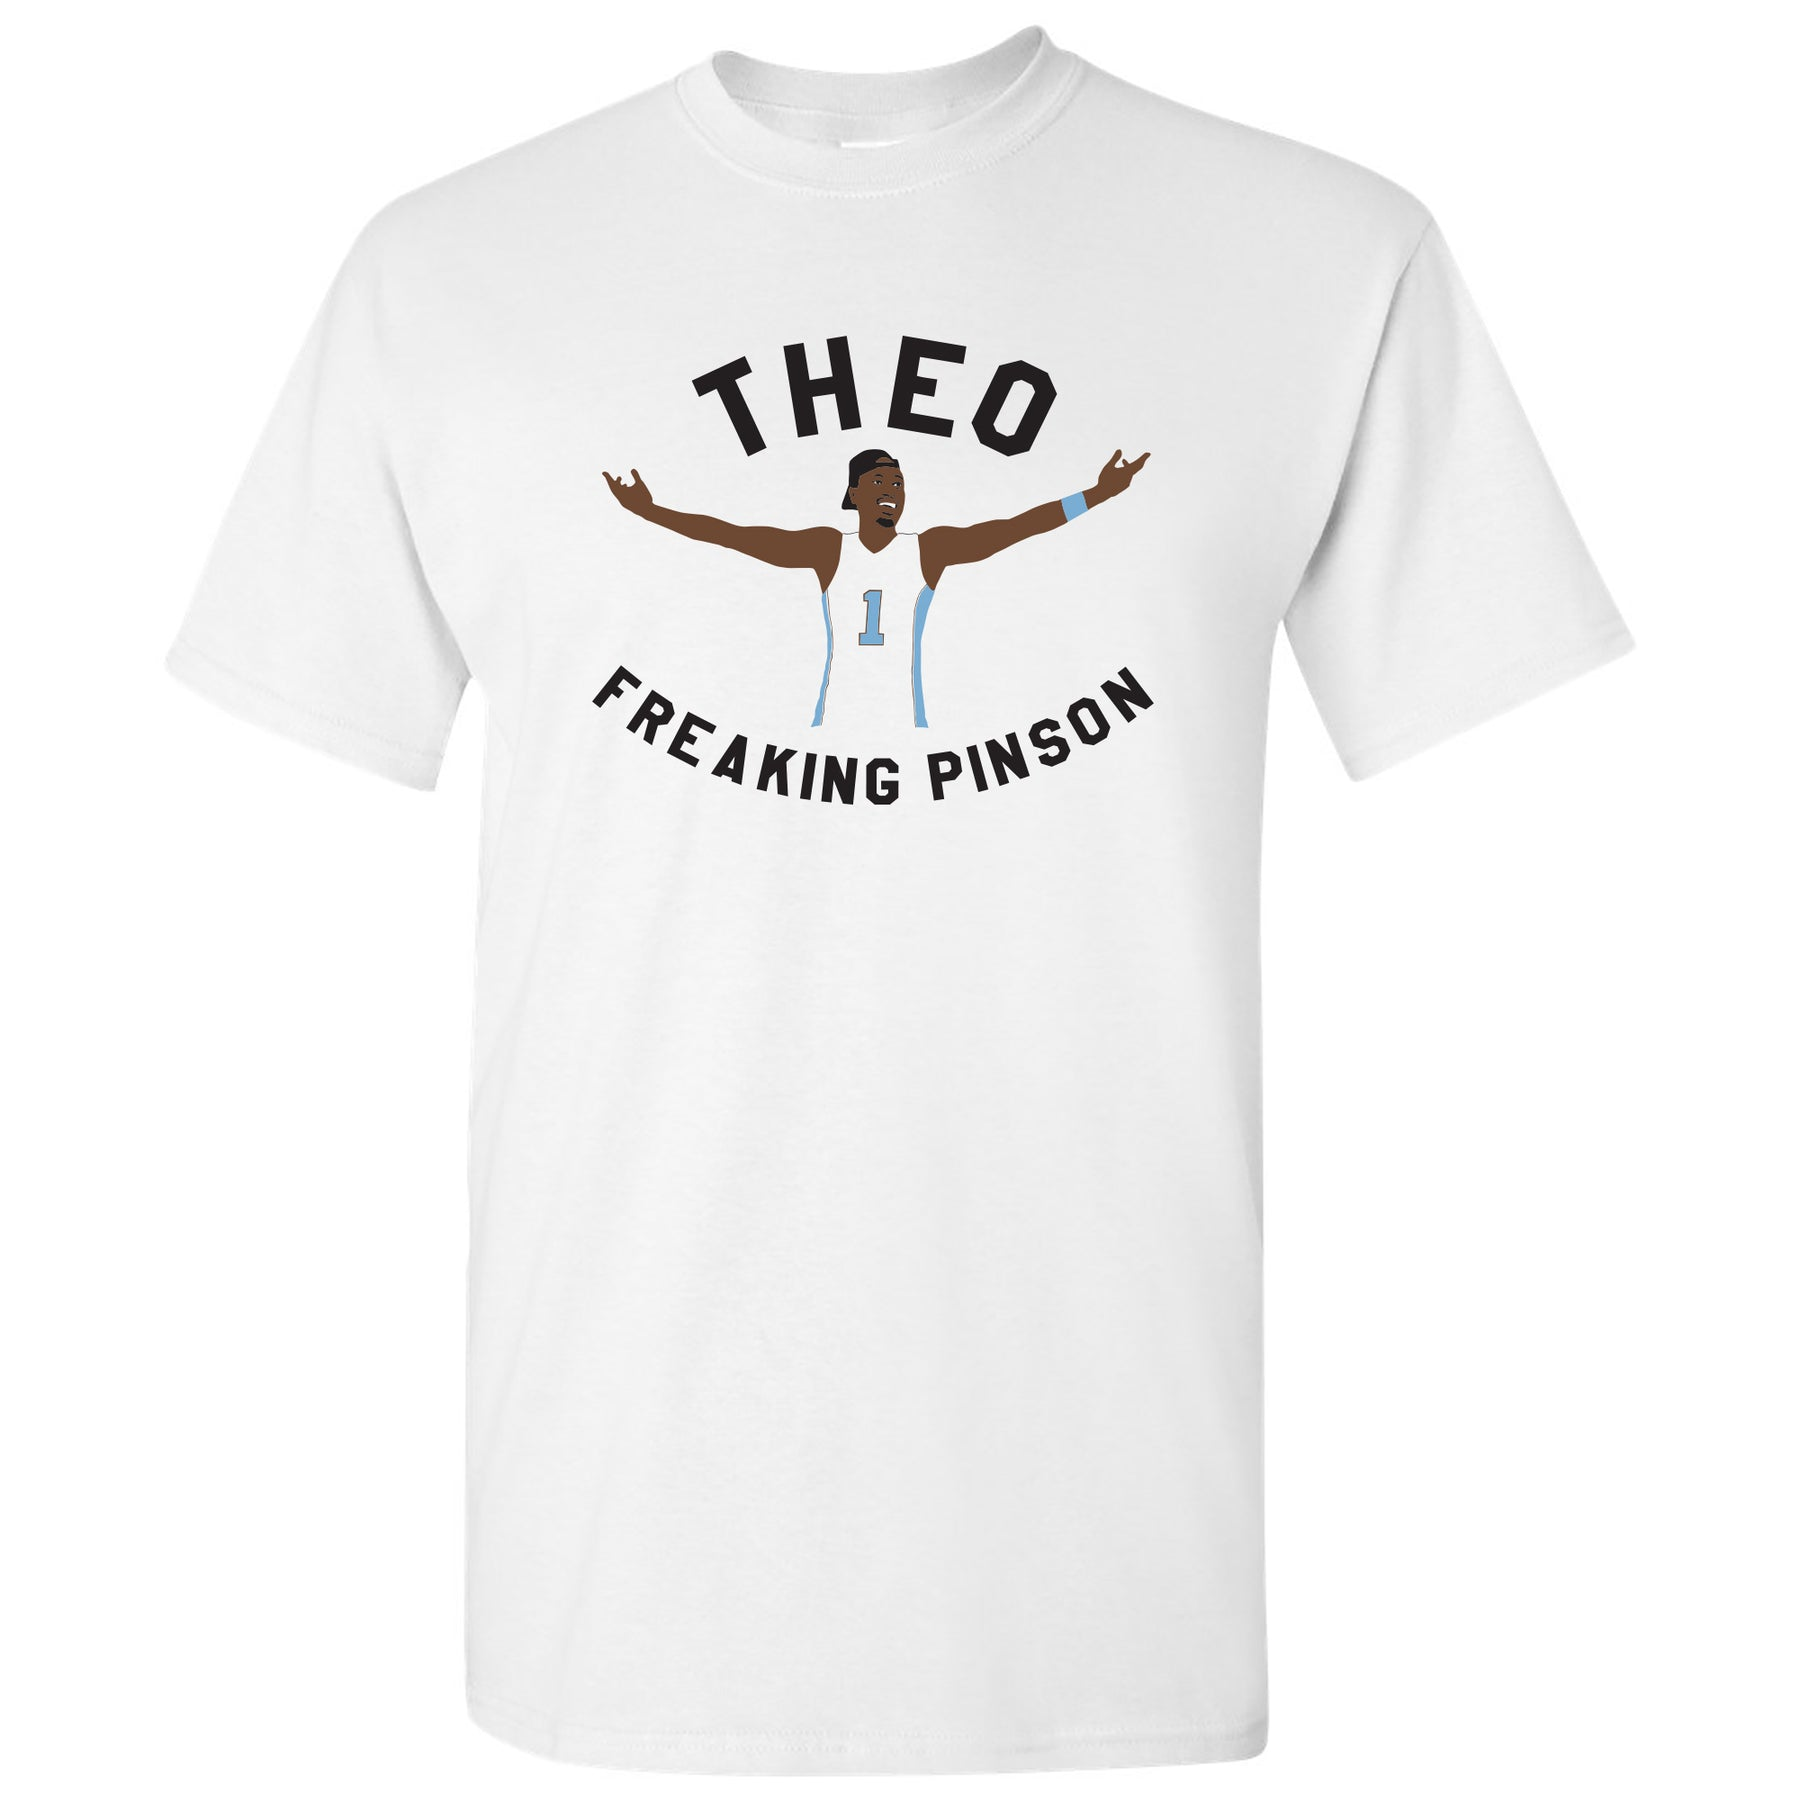 the best attitude 9034b 31bfe Theo Freaking Pinson T Shirt - White